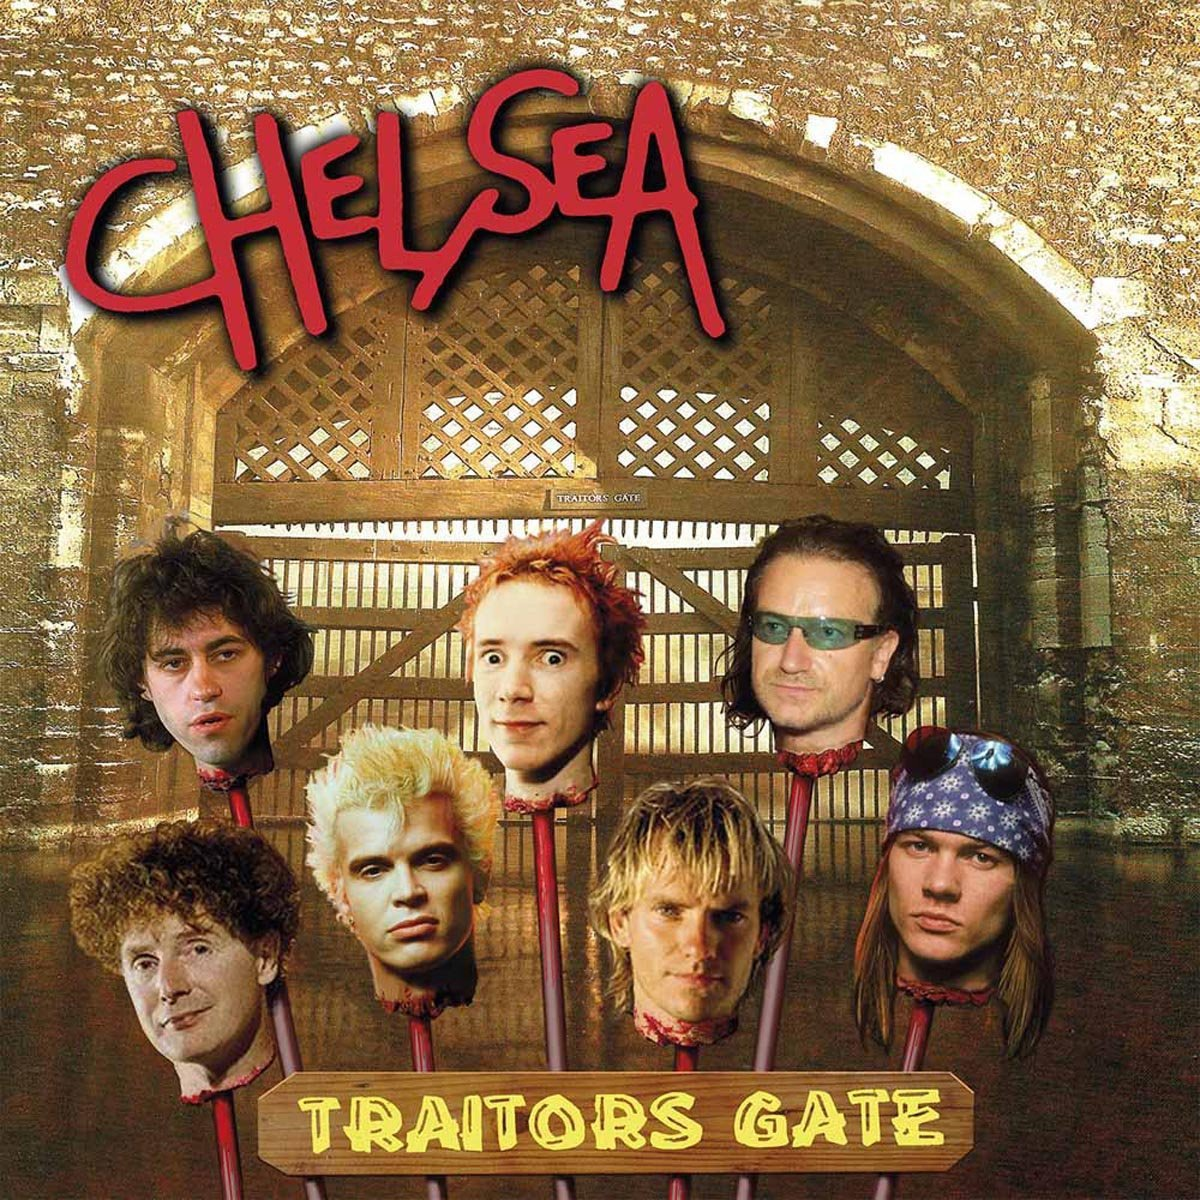 CHELSEA - TRAITOR'S GATE